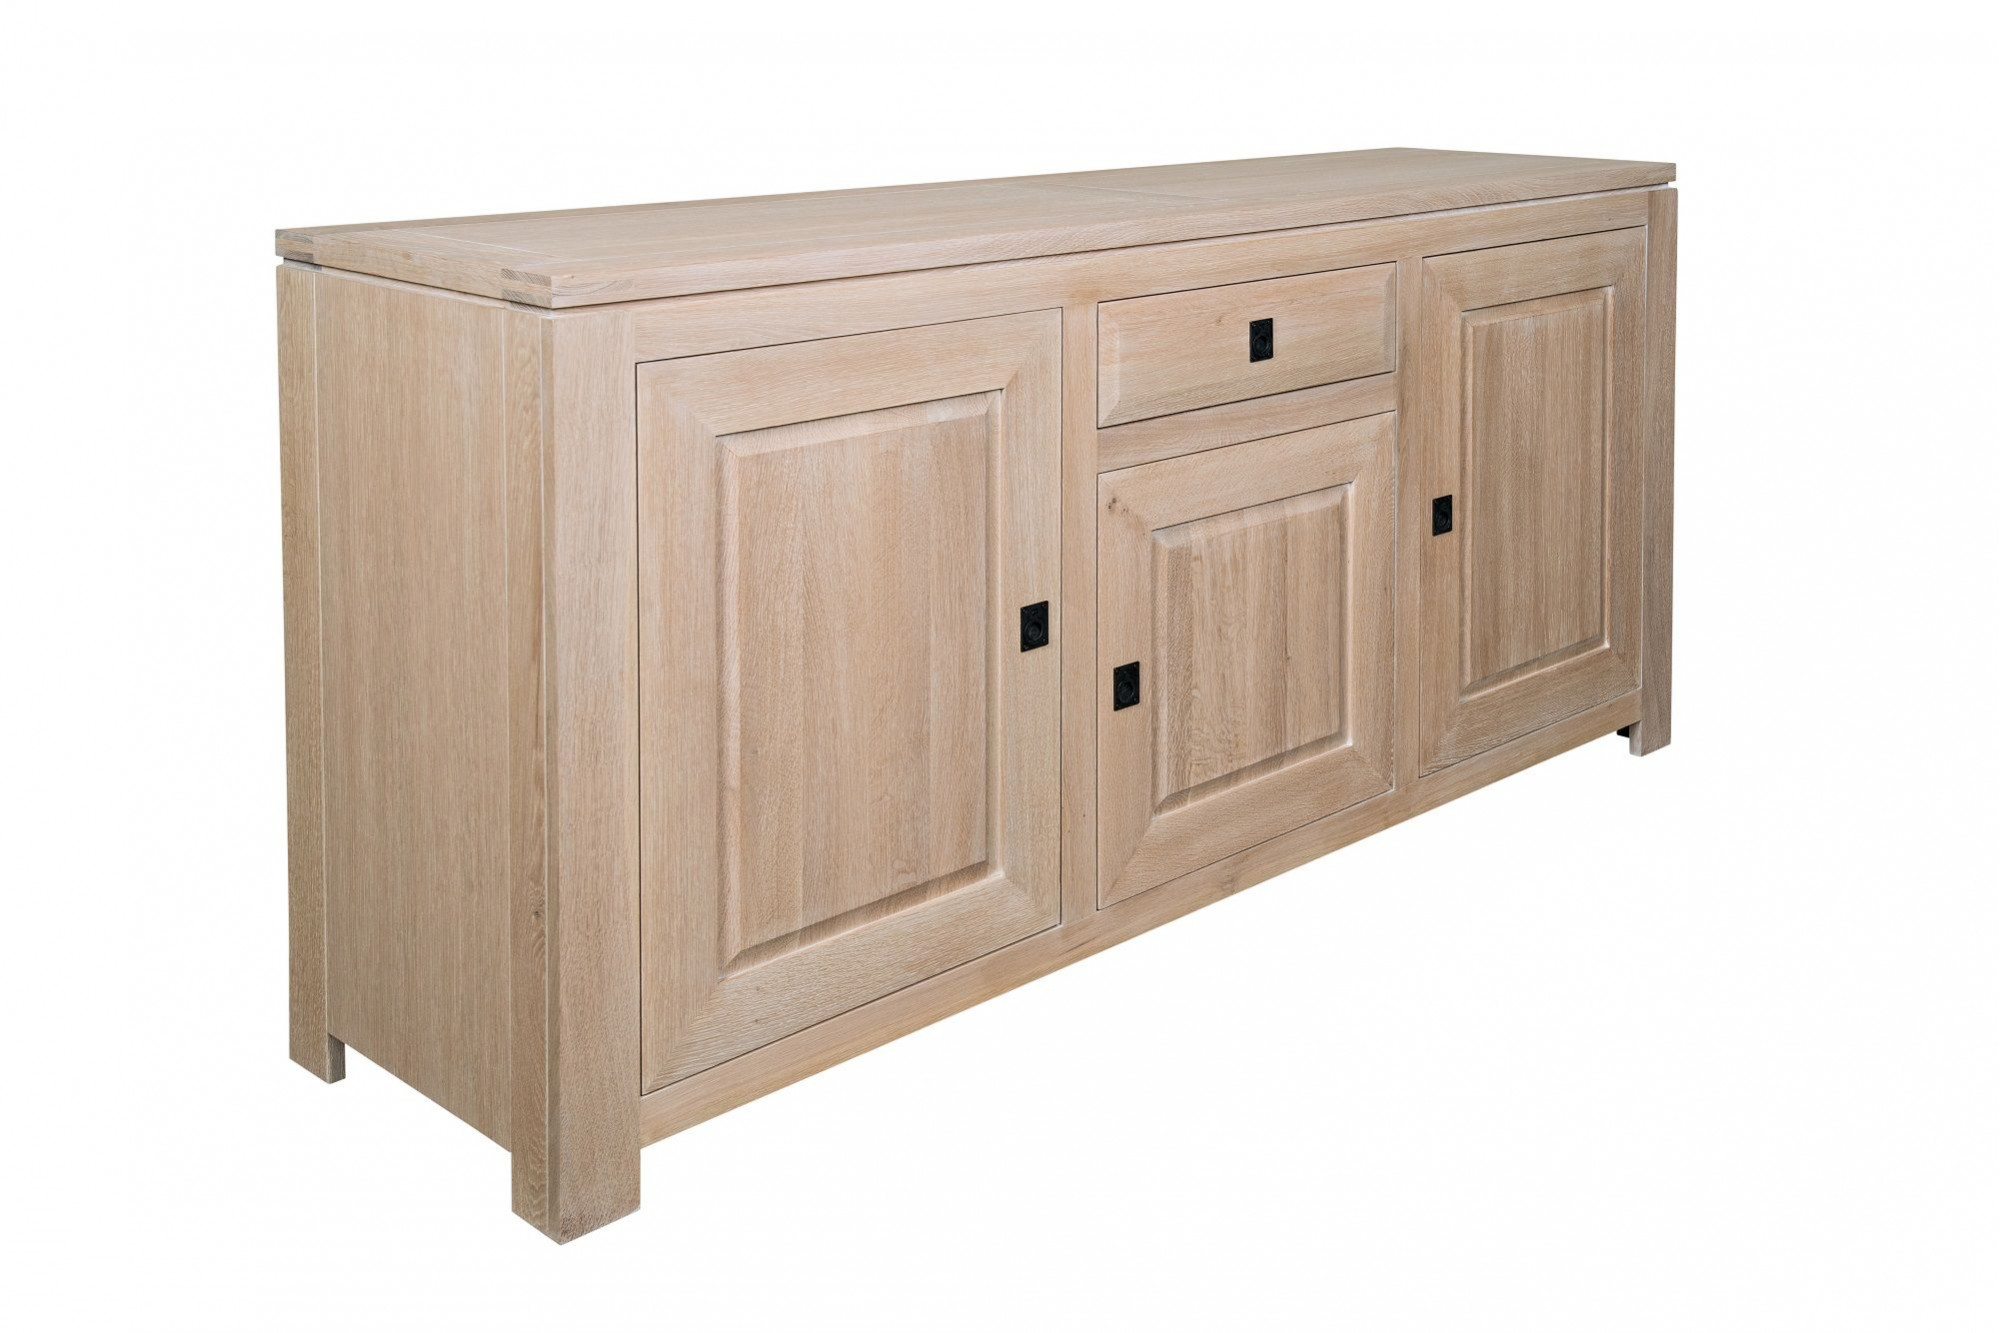 Comment Faire Du Chene Blanchi Buffet Massif Contemporain En Chêne Blanchi Boston Hellin